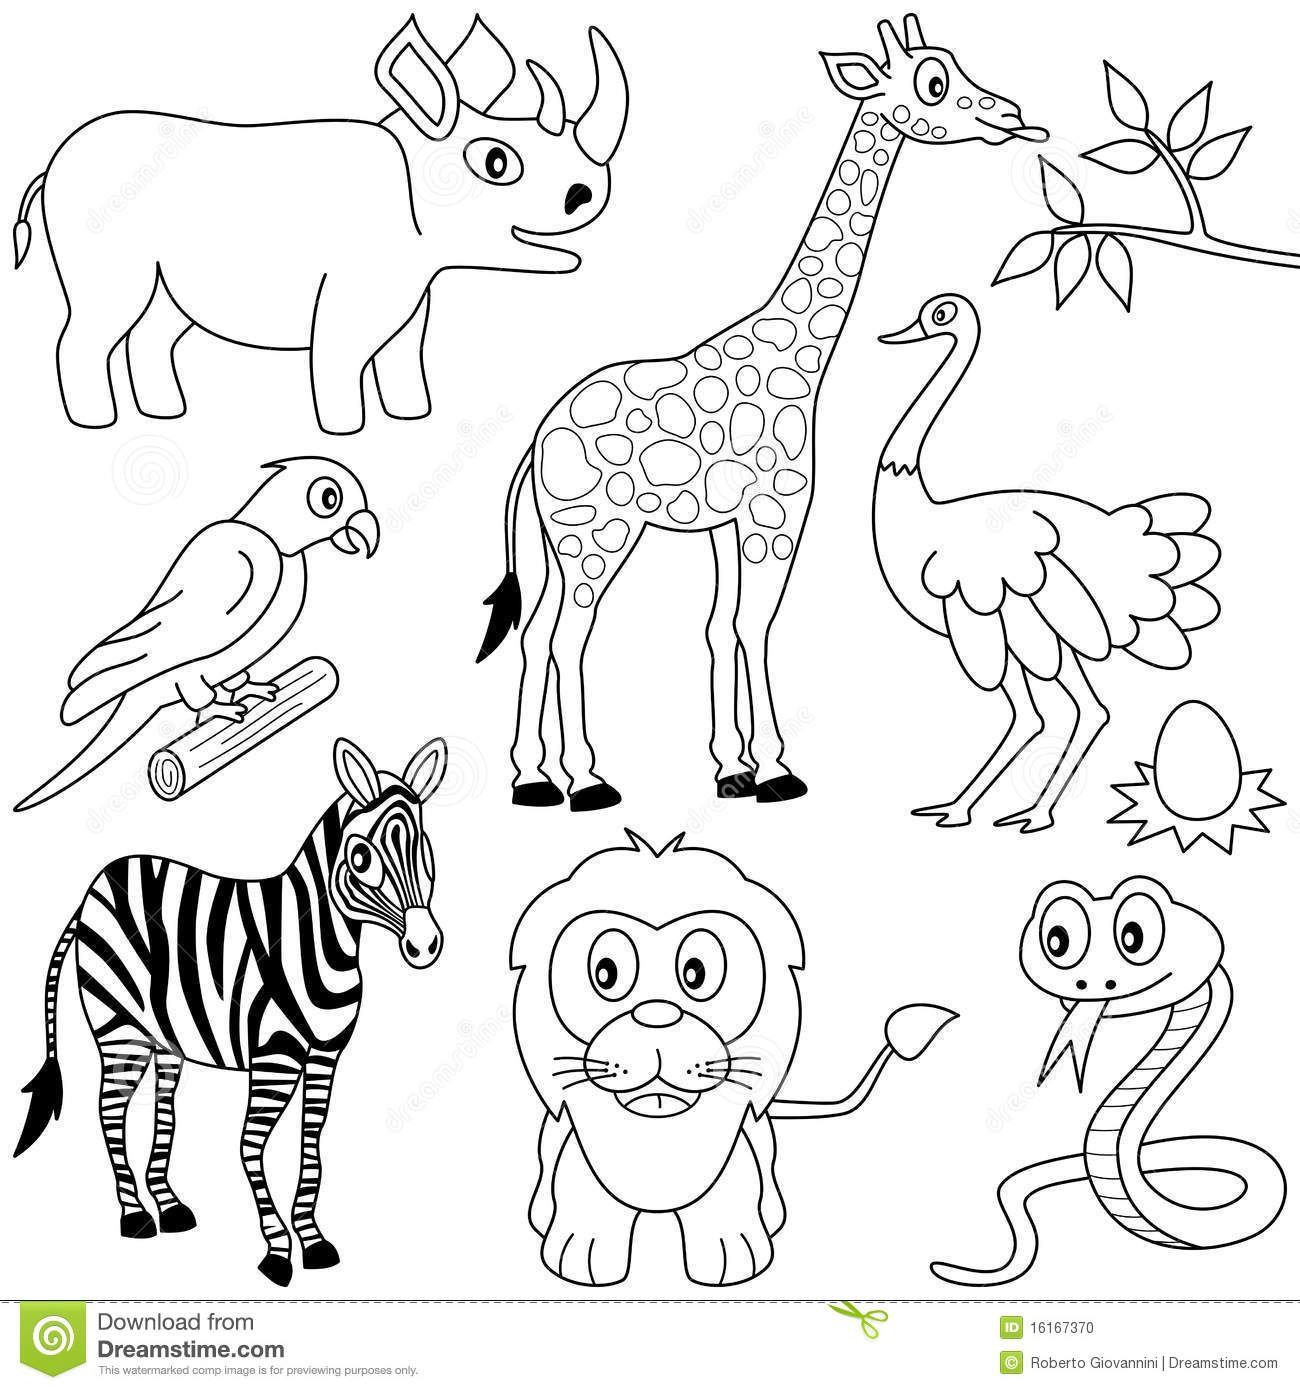 africa animals coloring pages coloring pages for african animals african animals coloring pages africa animals